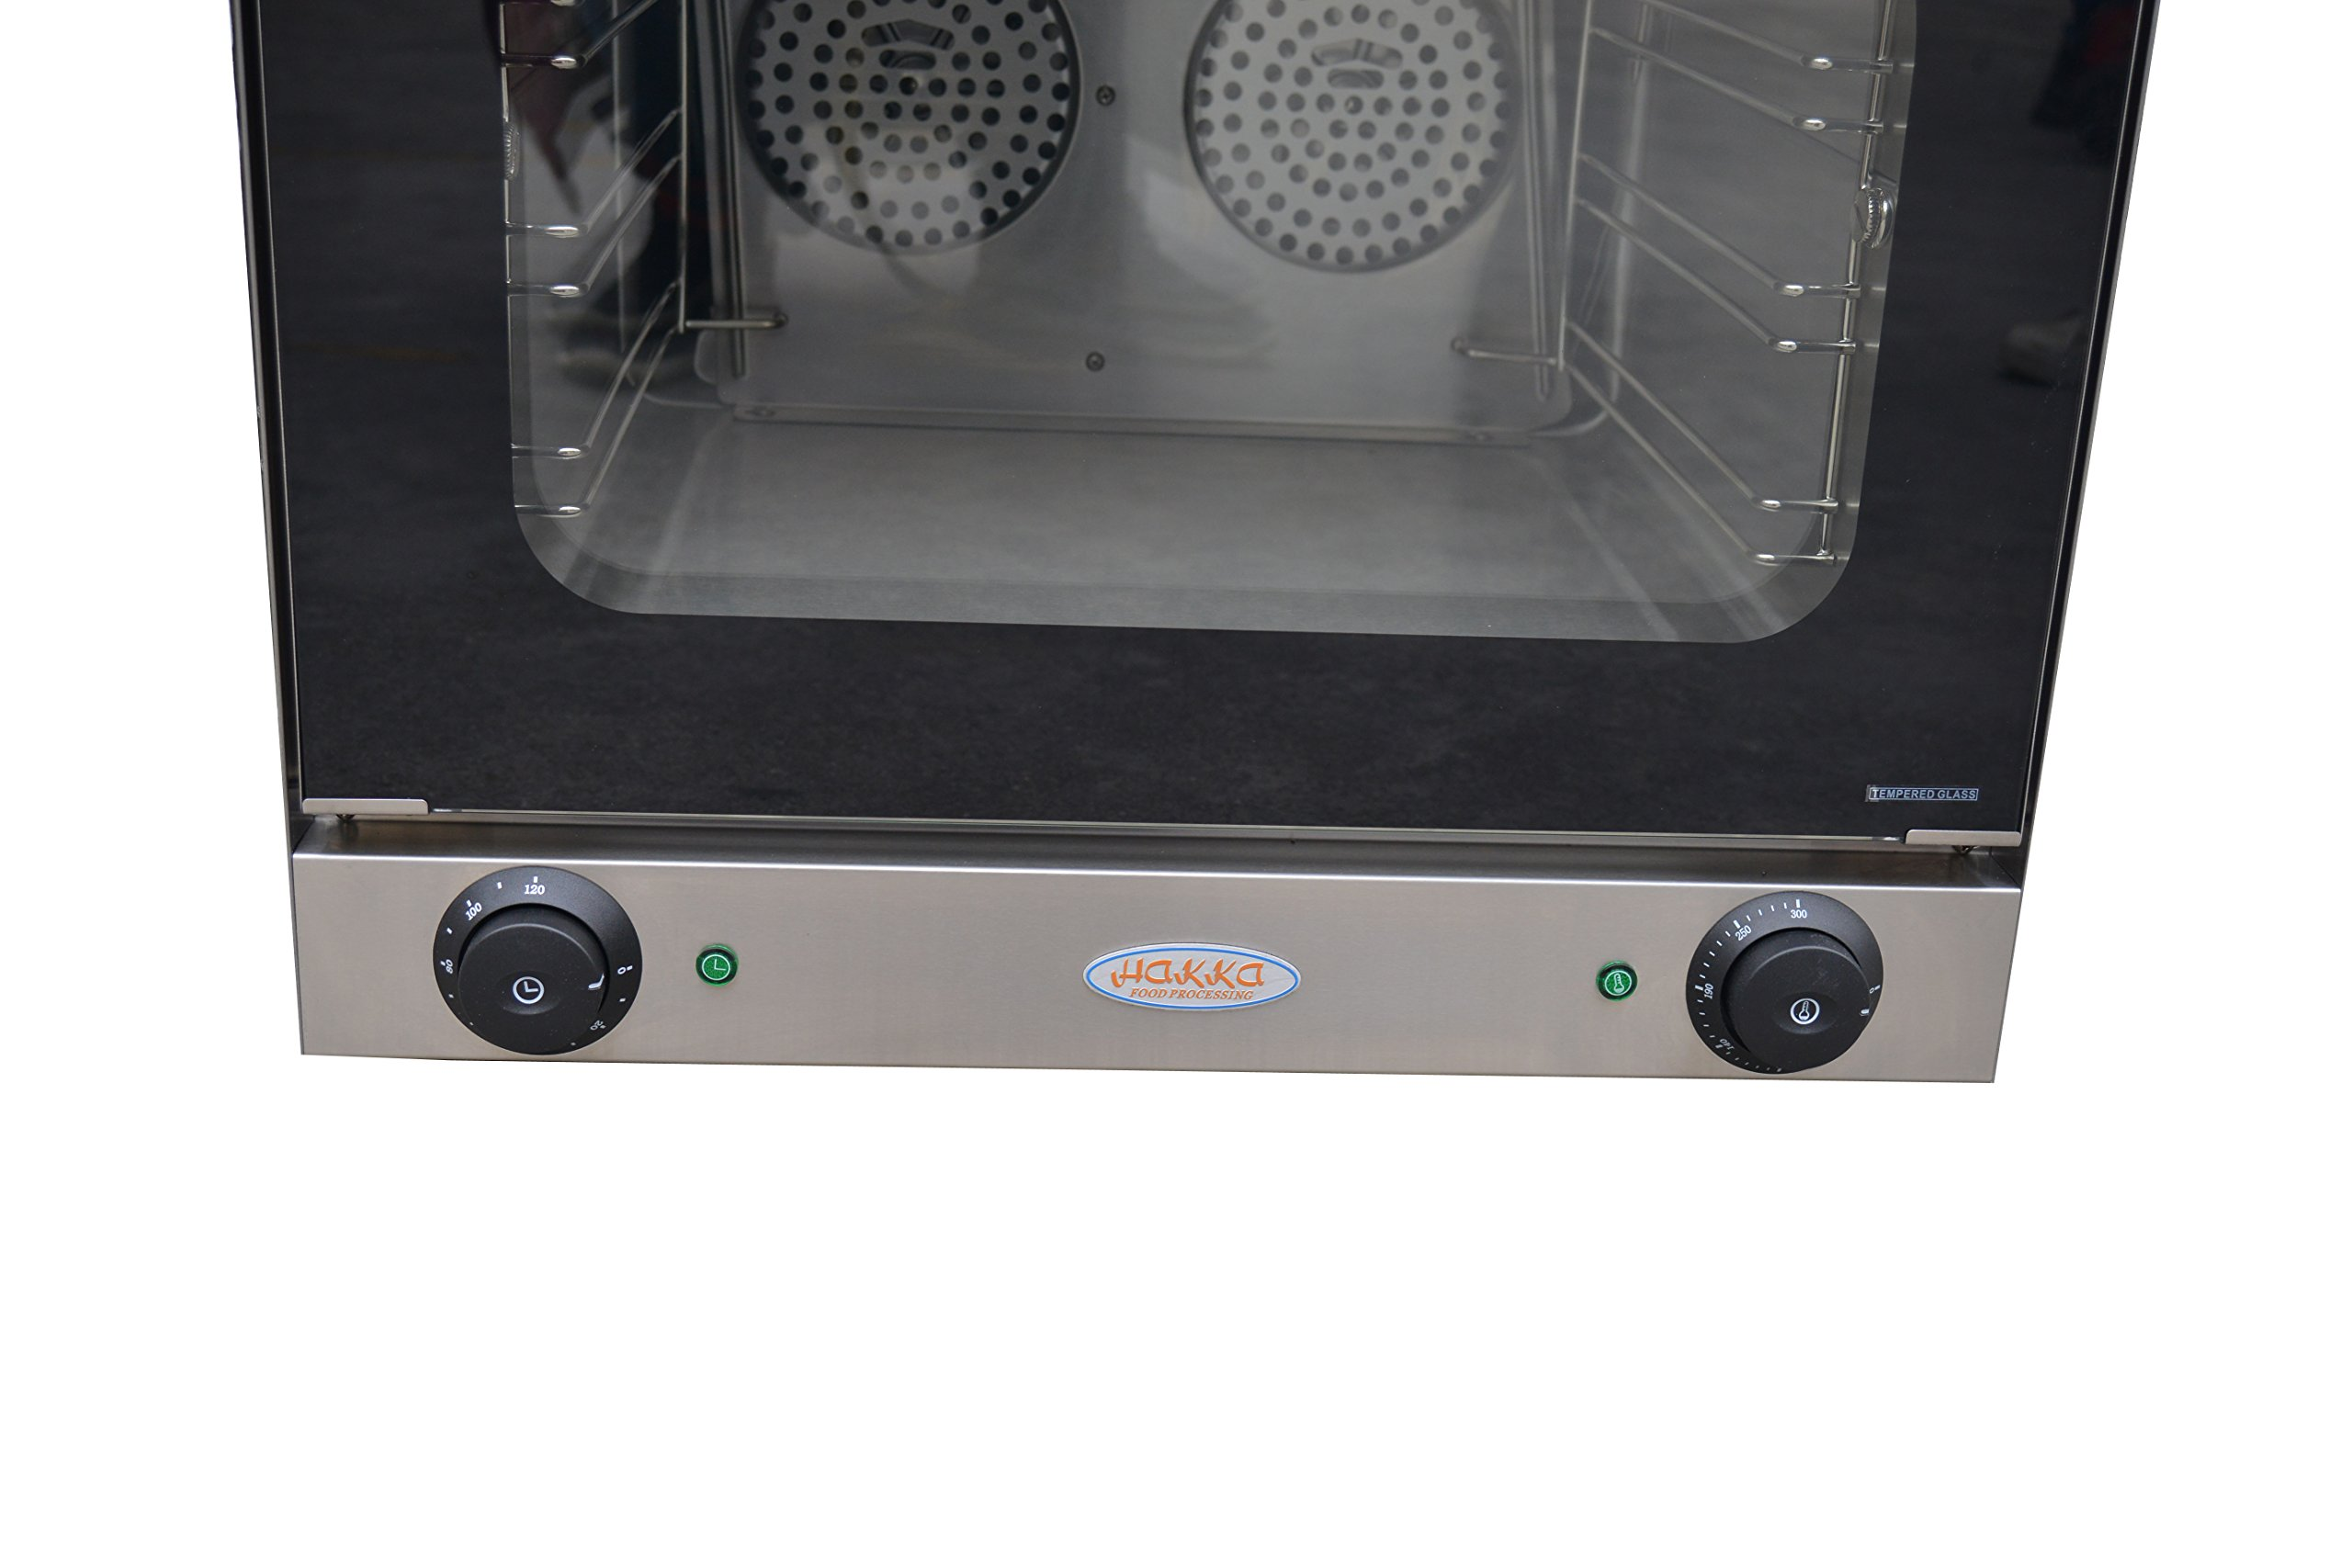 Hakka Commercial Convection Counter Top Oven with Steaming Function (220V/60Hz) by HAKKA (Image #5)